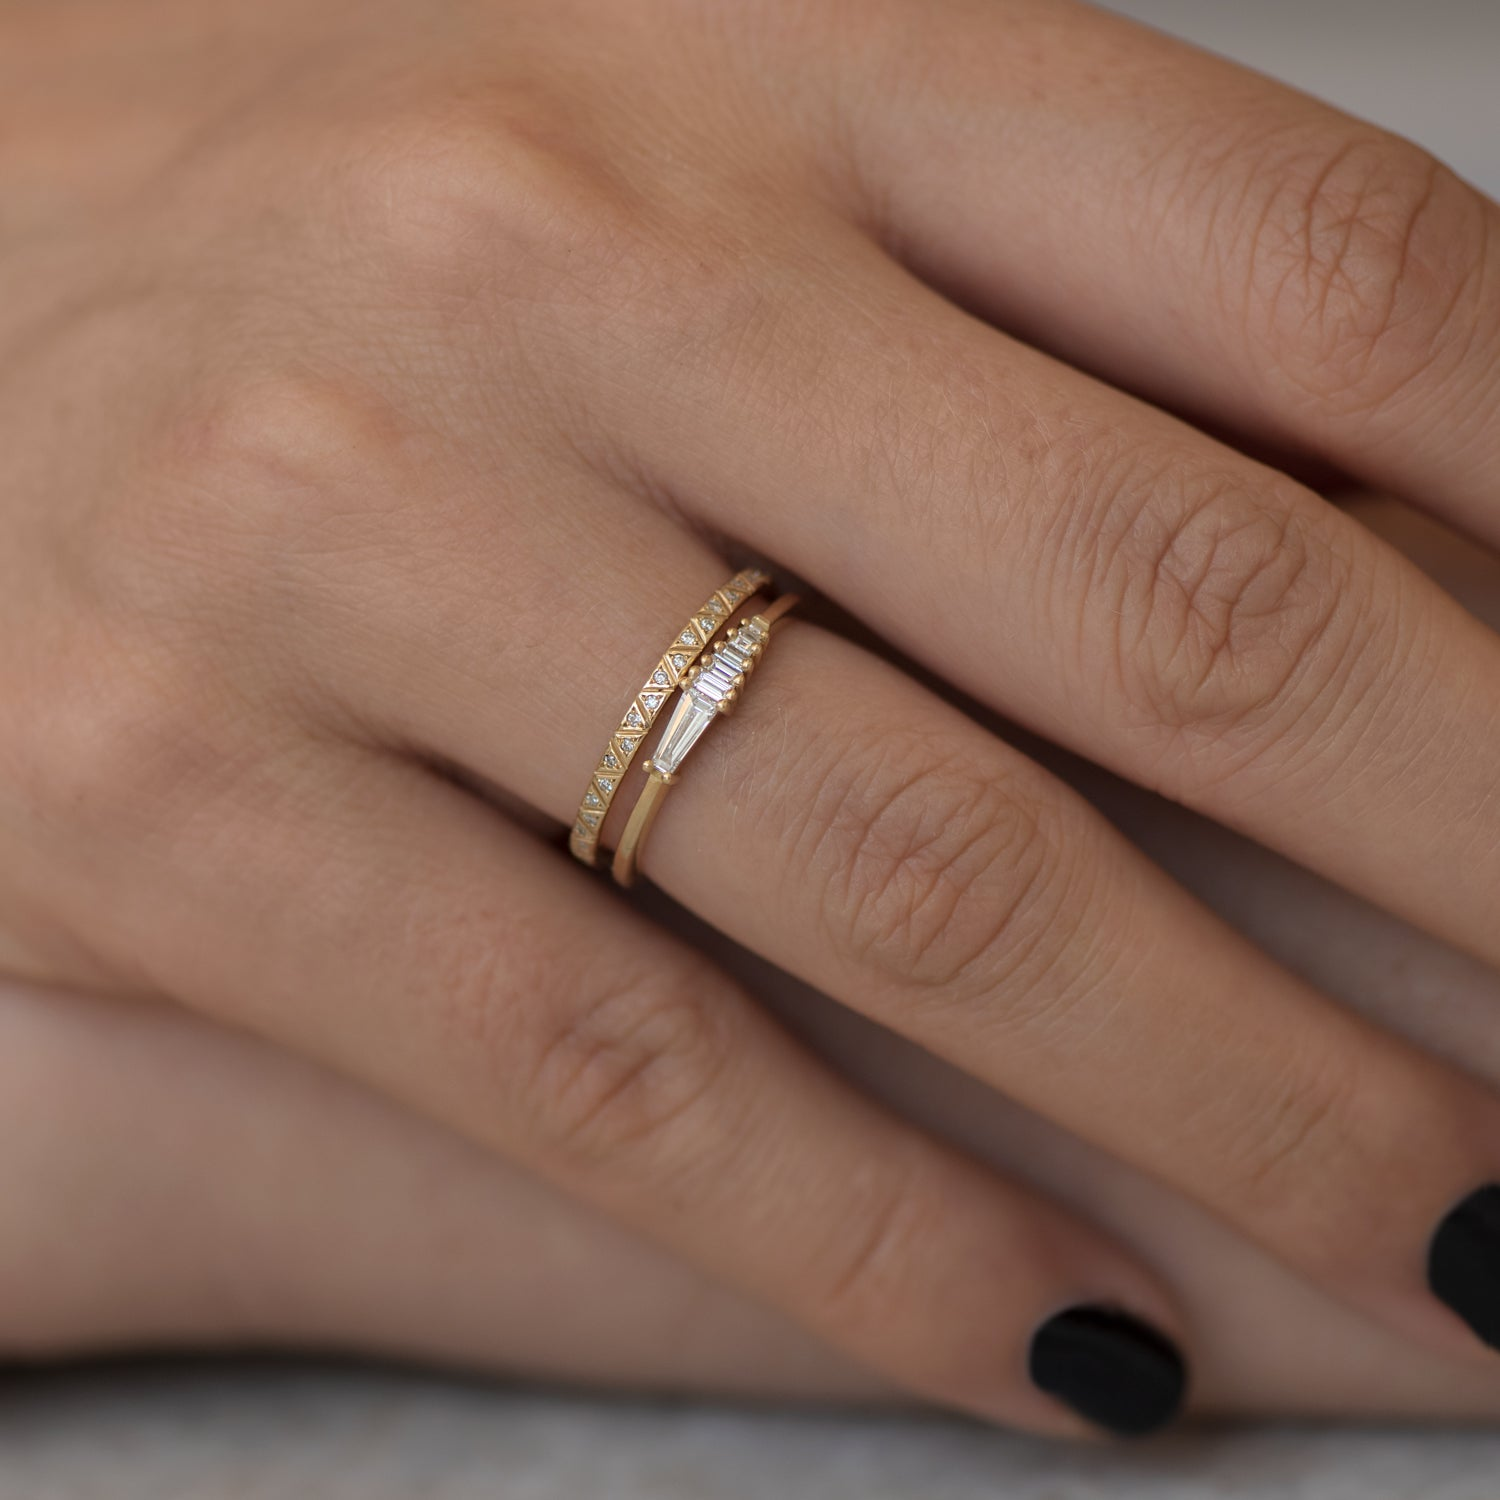 Dainty-Trapeze-Diamond-Ring-Geometric-Cluster-Ring-top-shot-in-set